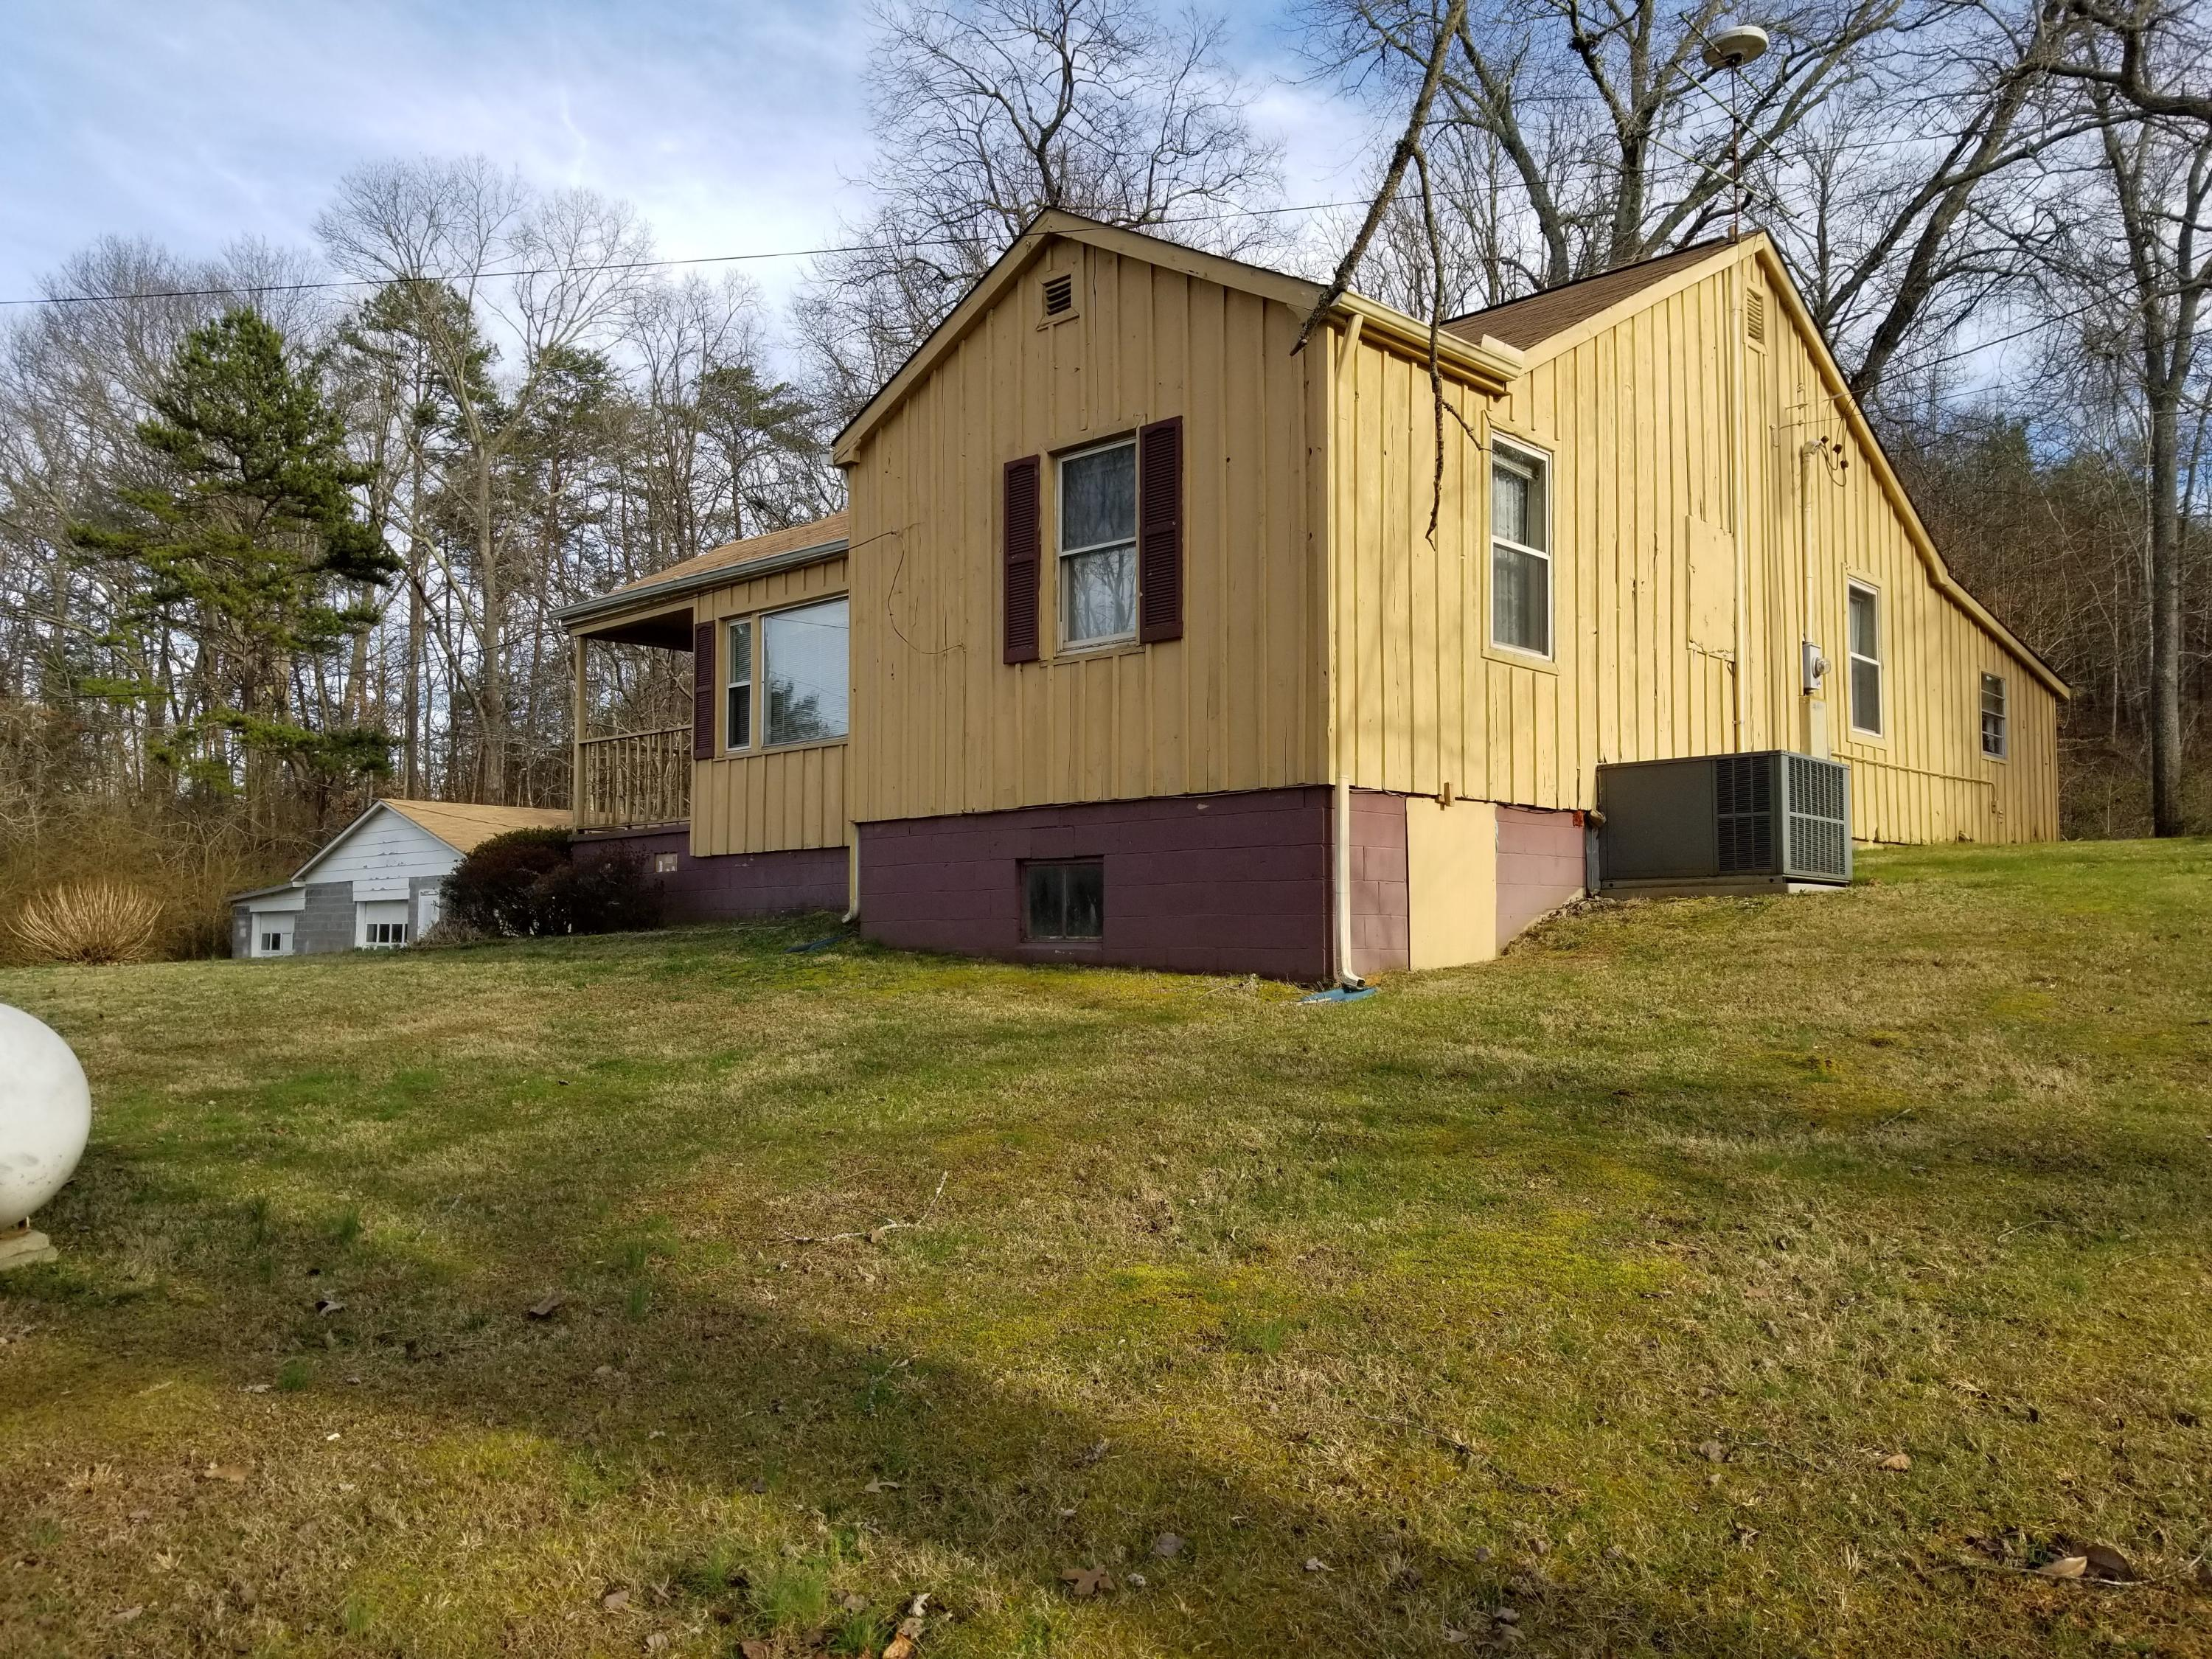 8907 Simpson Rd, Knoxville, Tennessee 37920, 3 Bedrooms Bedrooms, ,1 BathroomBathrooms,Single Family,For Sale,Simpson,1069491